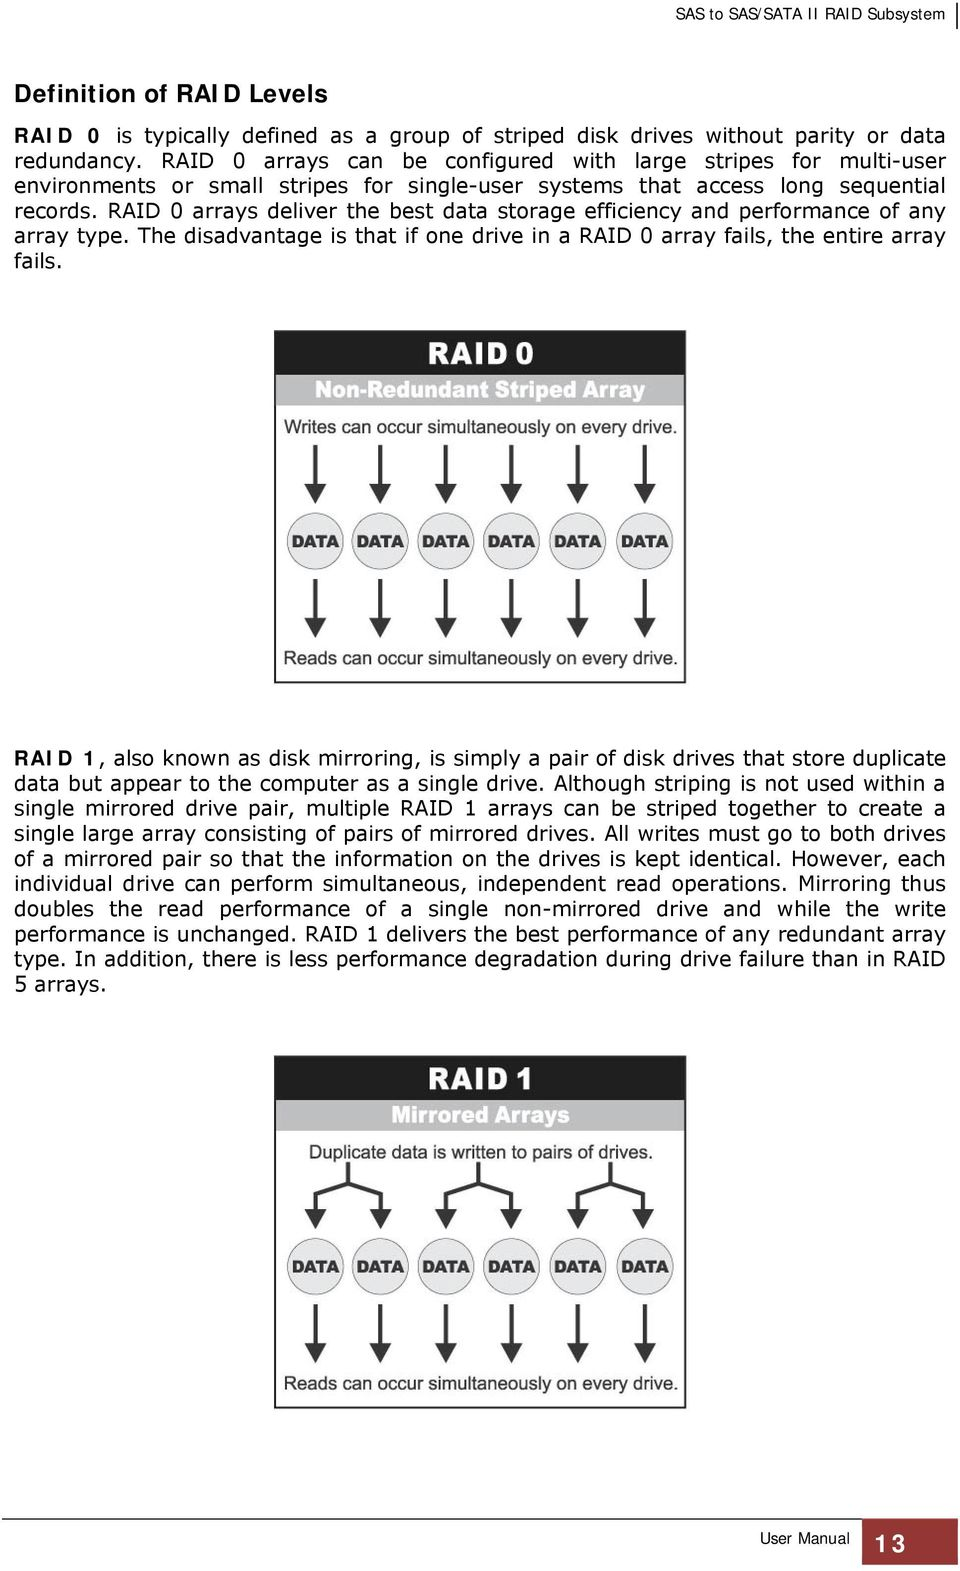 RAID 0 arrays deliver the best data storage efficiency and performance of any array type. The disadvantage is that if one drive in a RAID 0 array fails, the entire array fails.